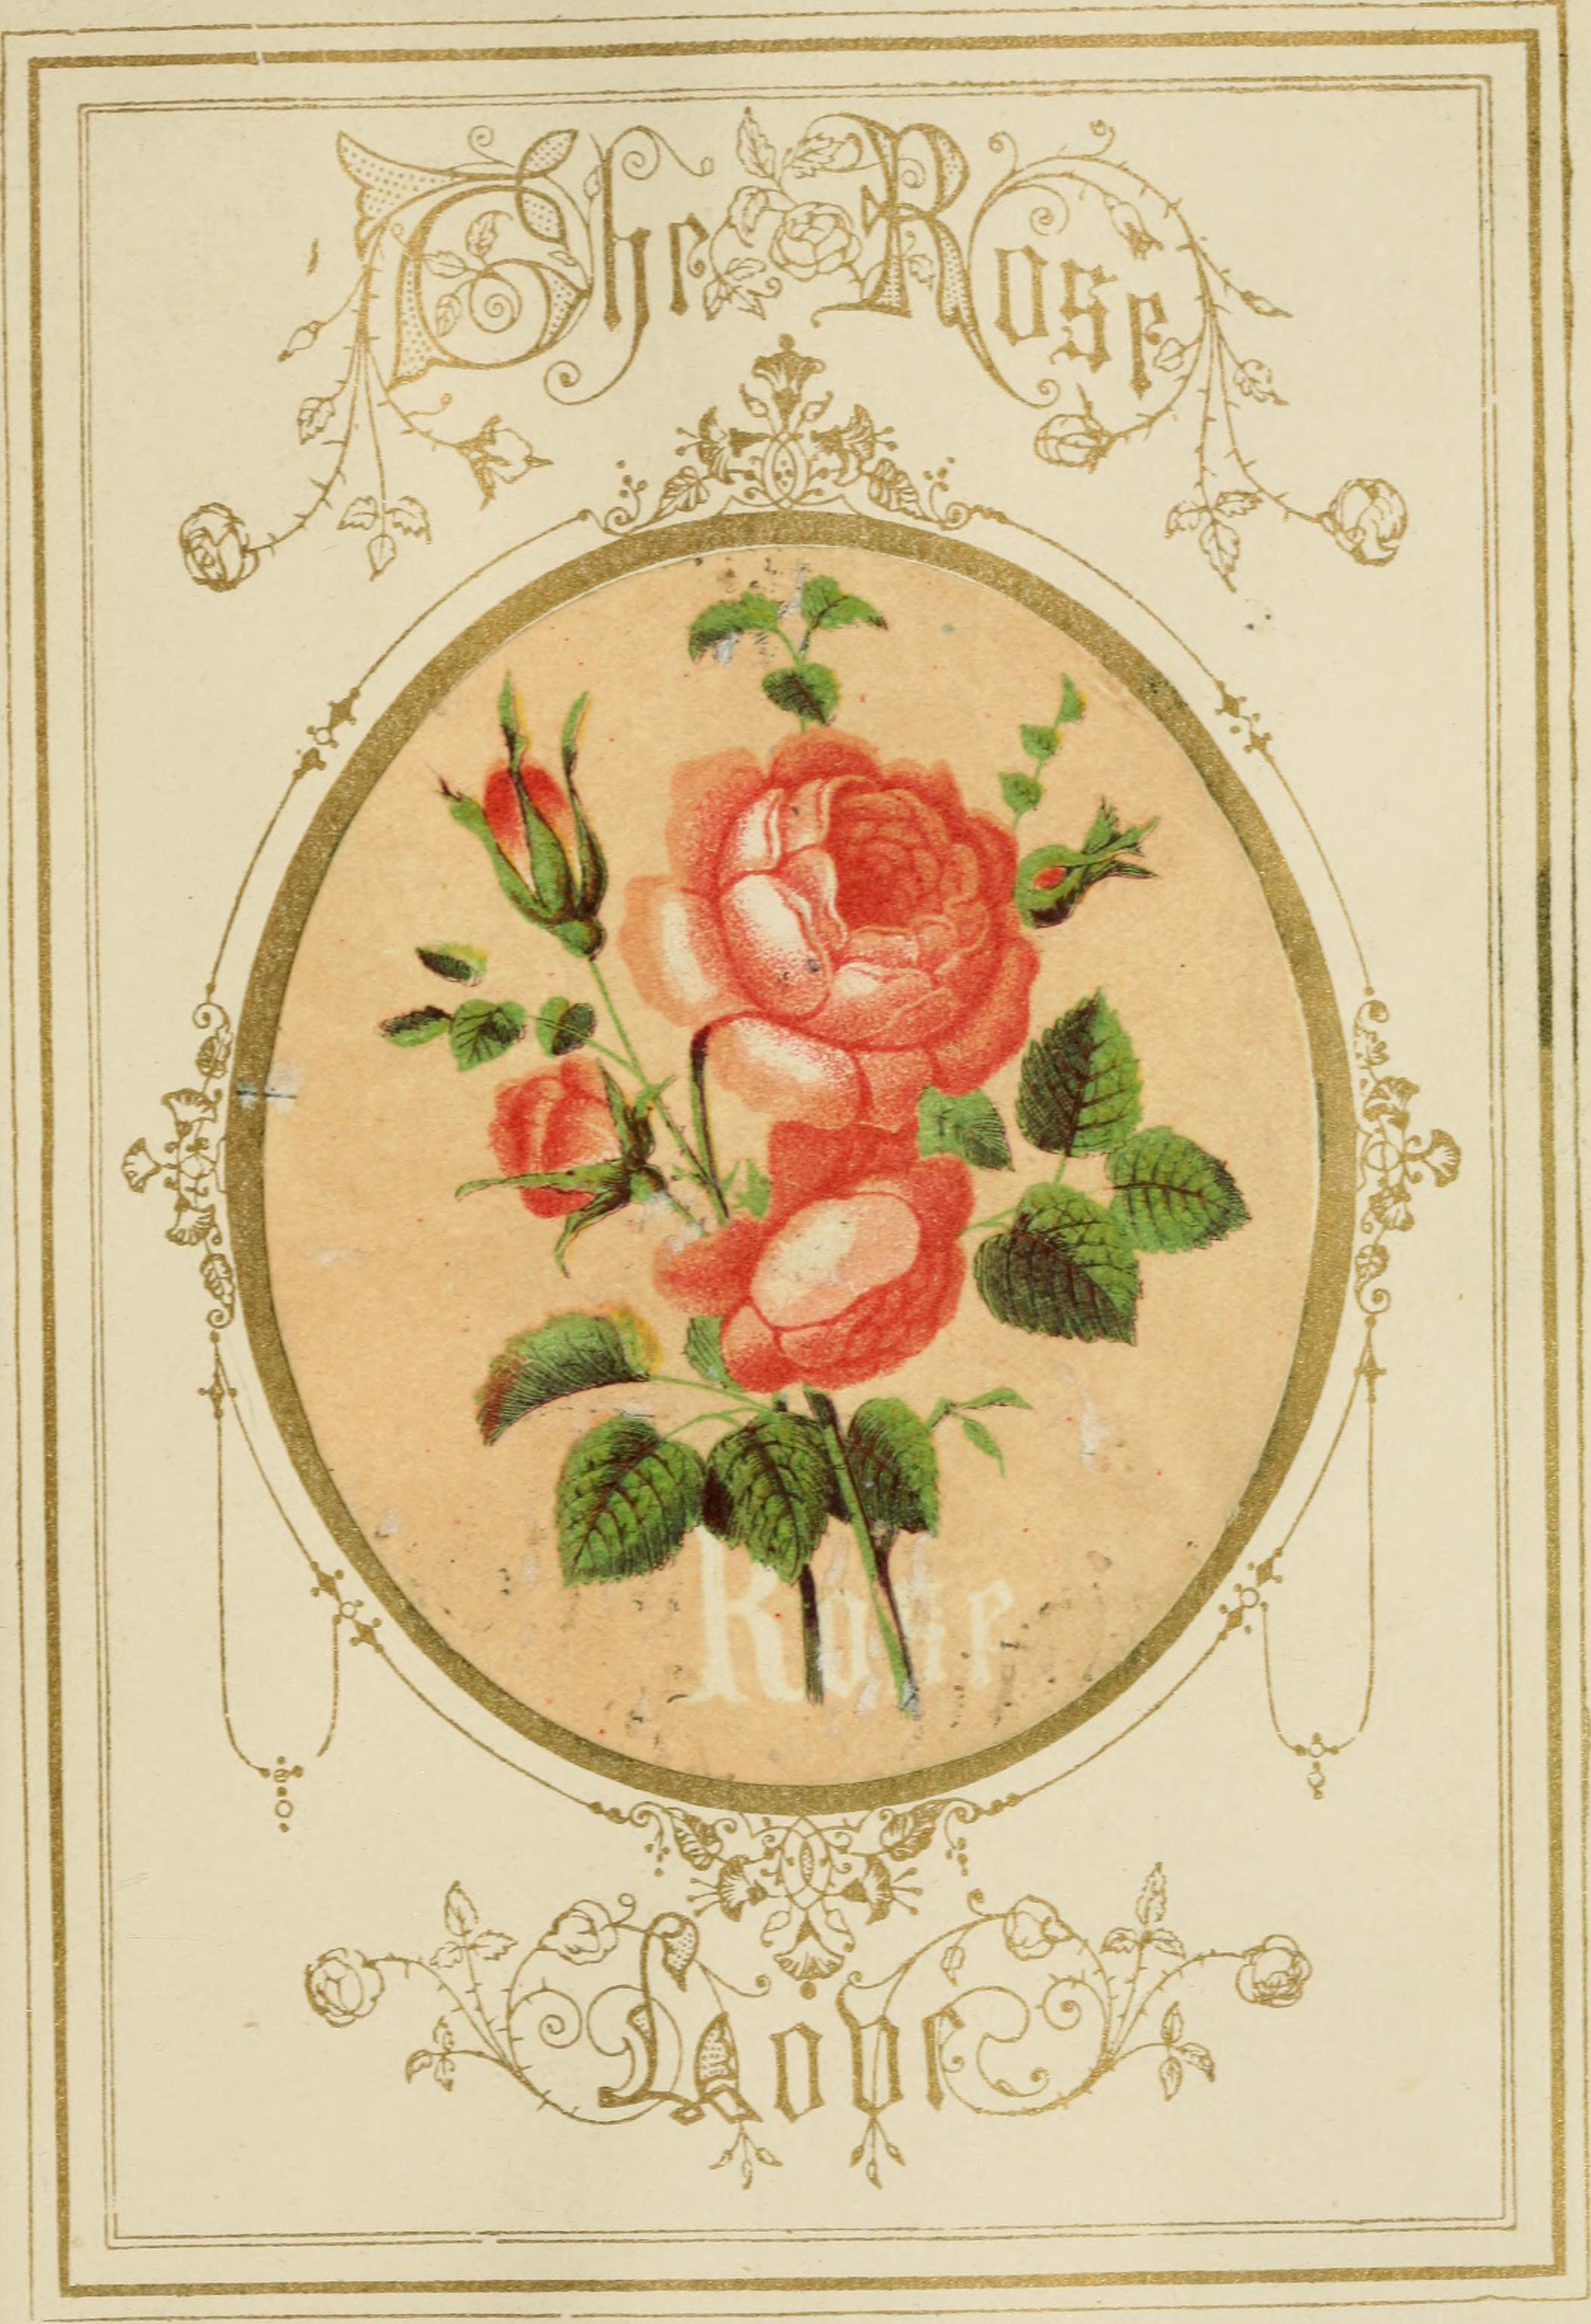 Filethe language of flowers an alphabet of floral emblems 1857 filethe language of flowers an alphabet of floral emblems 1857 mightylinksfo